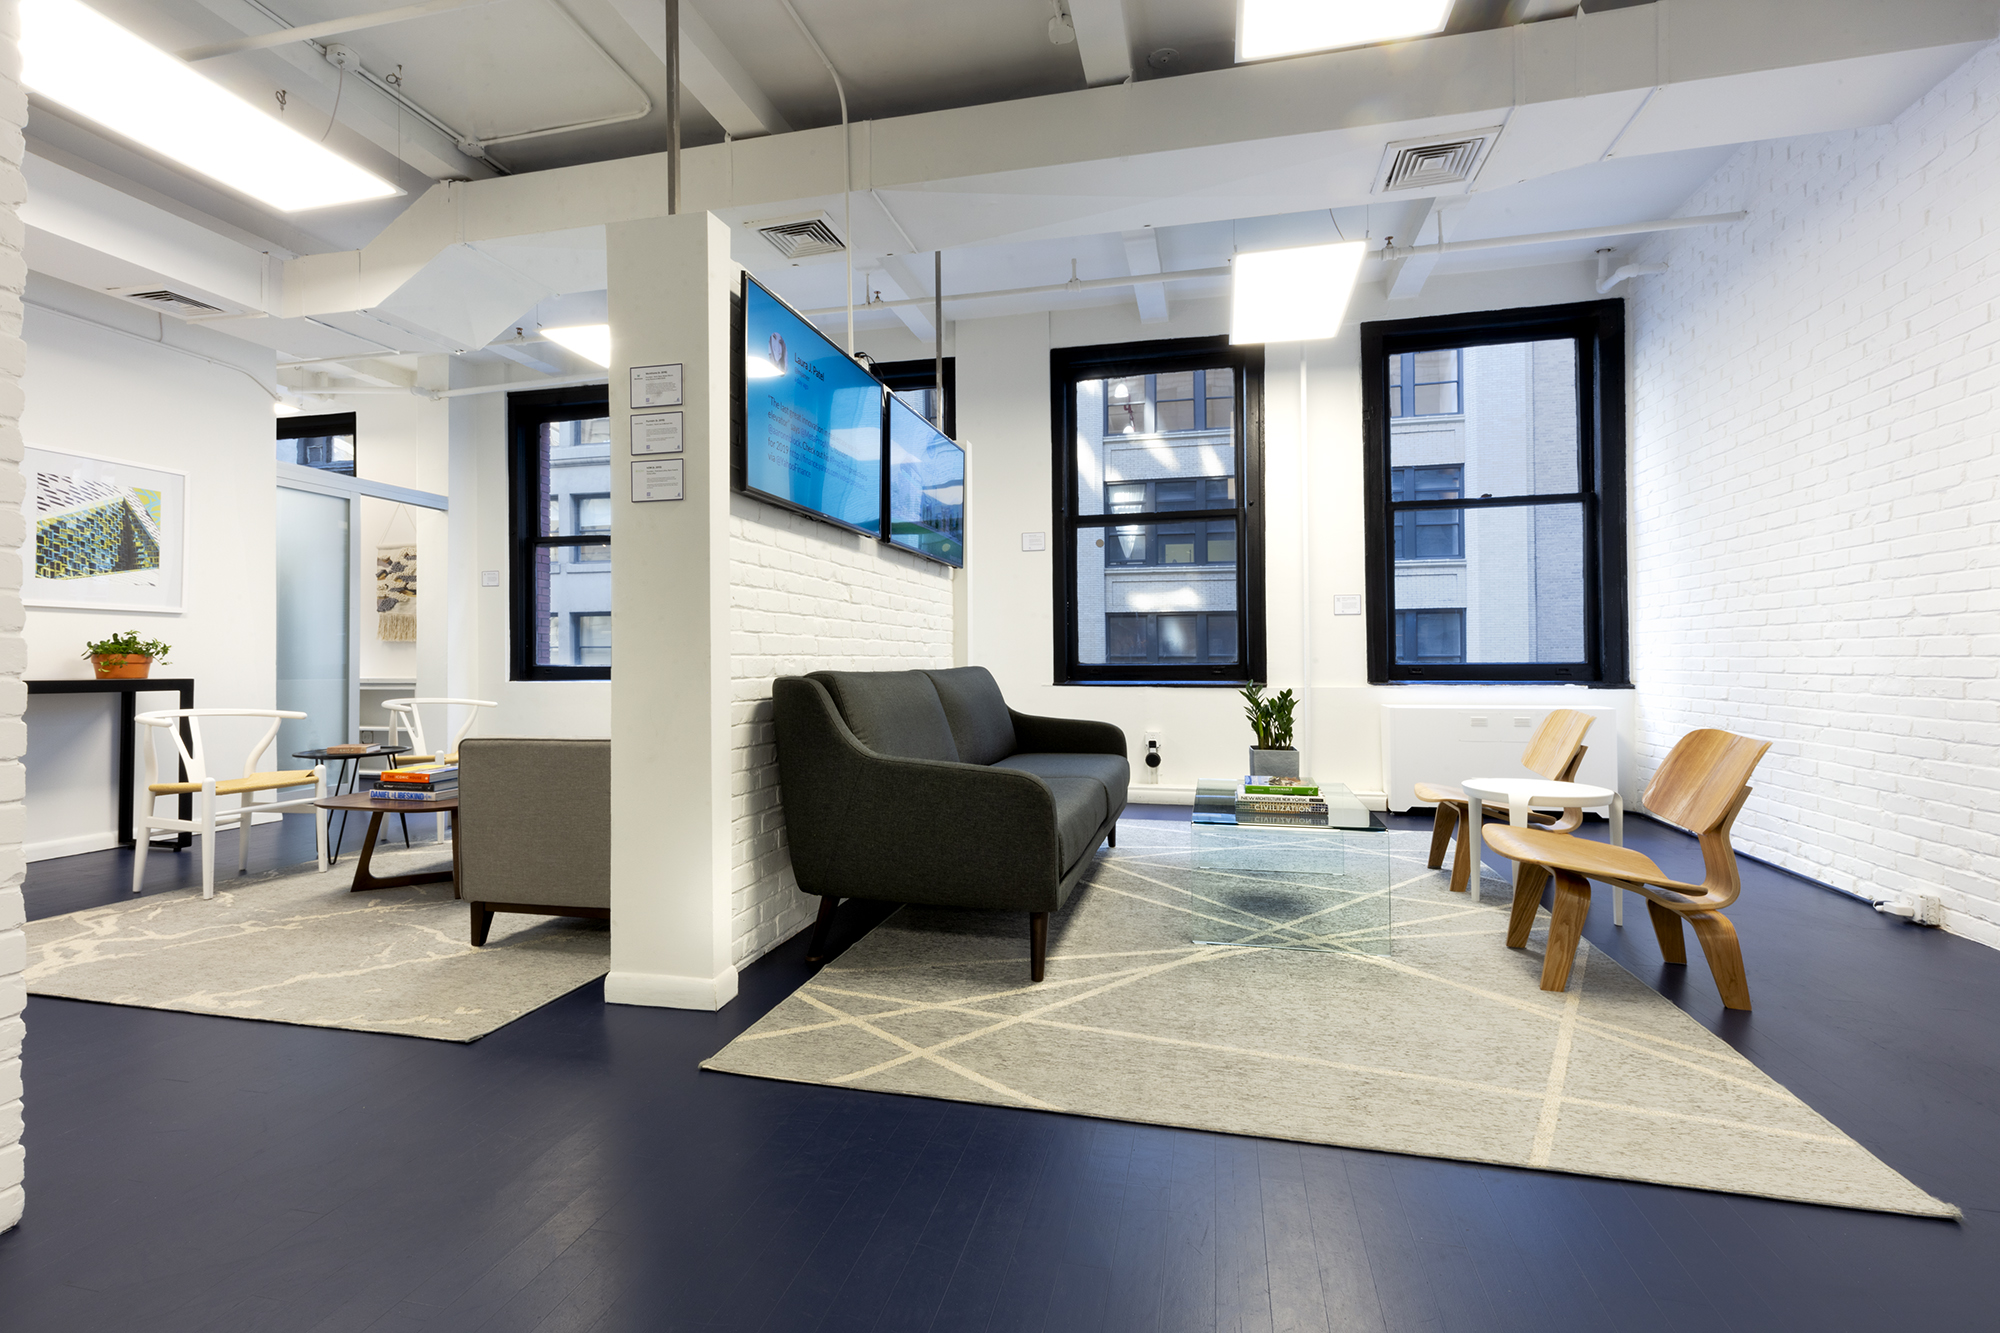 Real Estate Technology Has A New Home In New York City